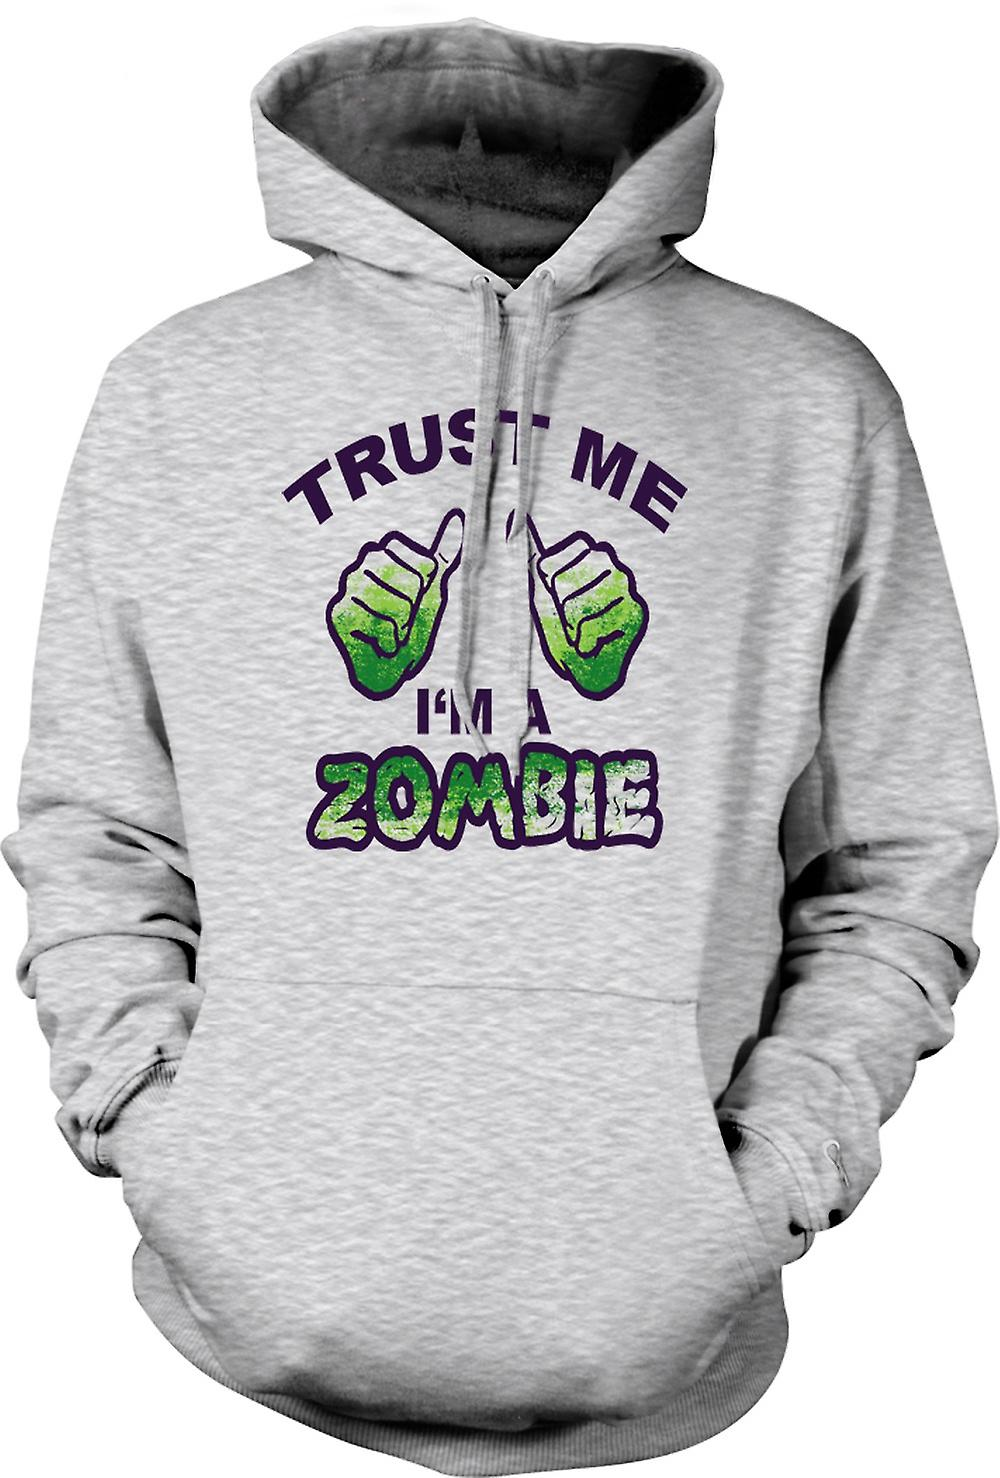 Mens Hoodie - Trust Me Im A Zombie - Funny